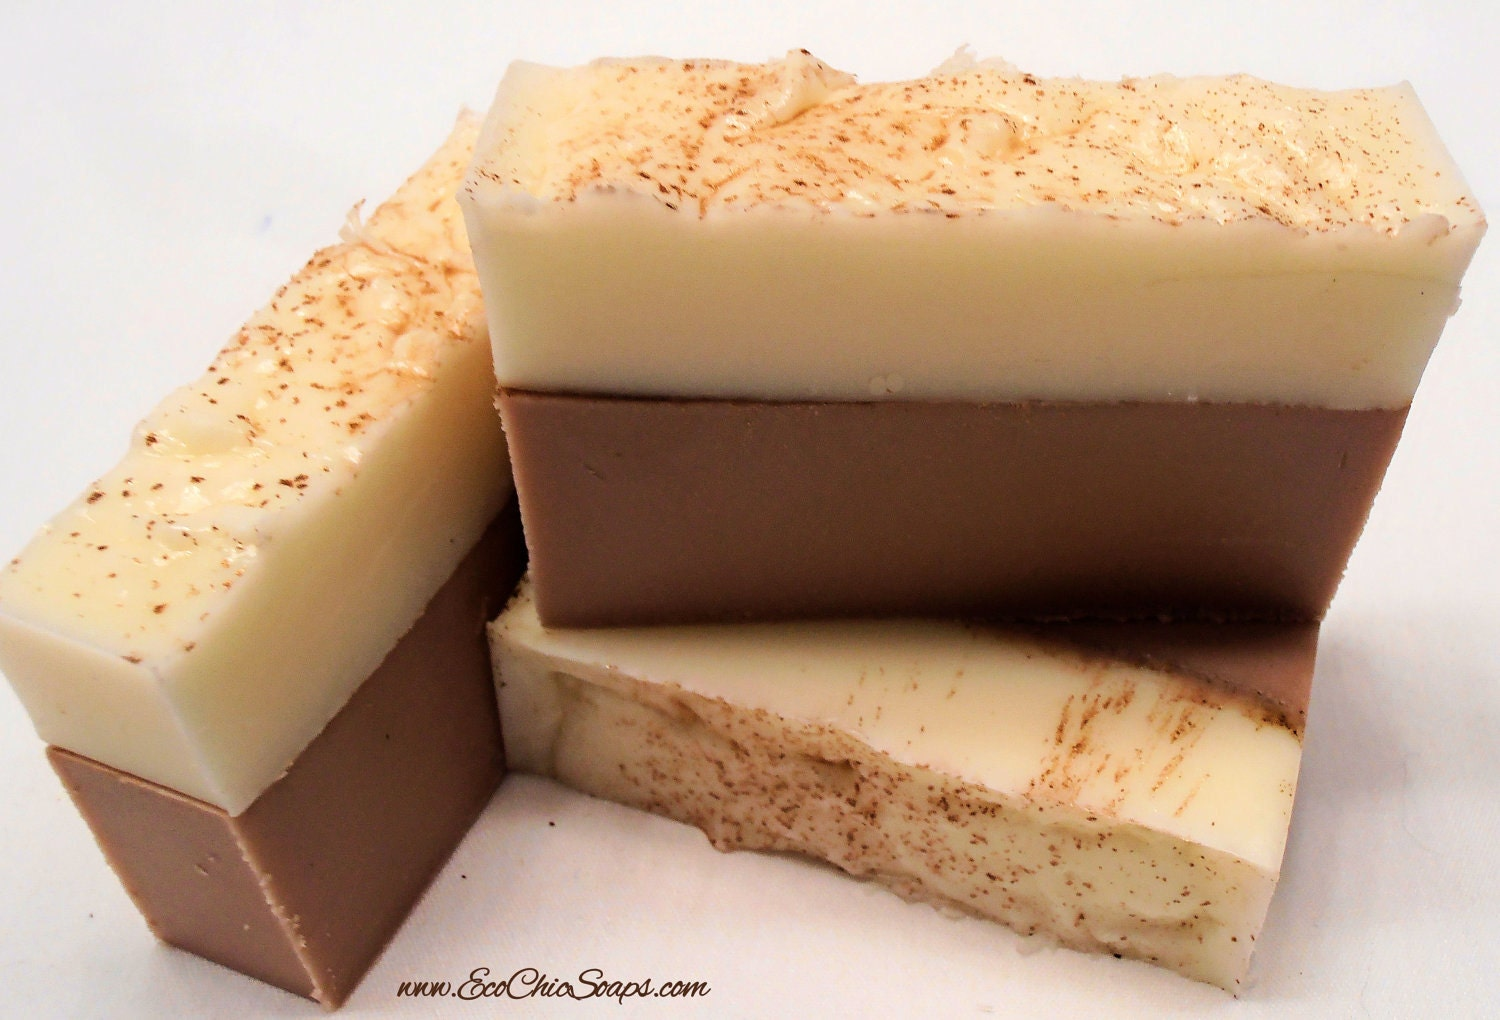 Chocolate Latte Soap - Cocoa Butter - Handmade Soap